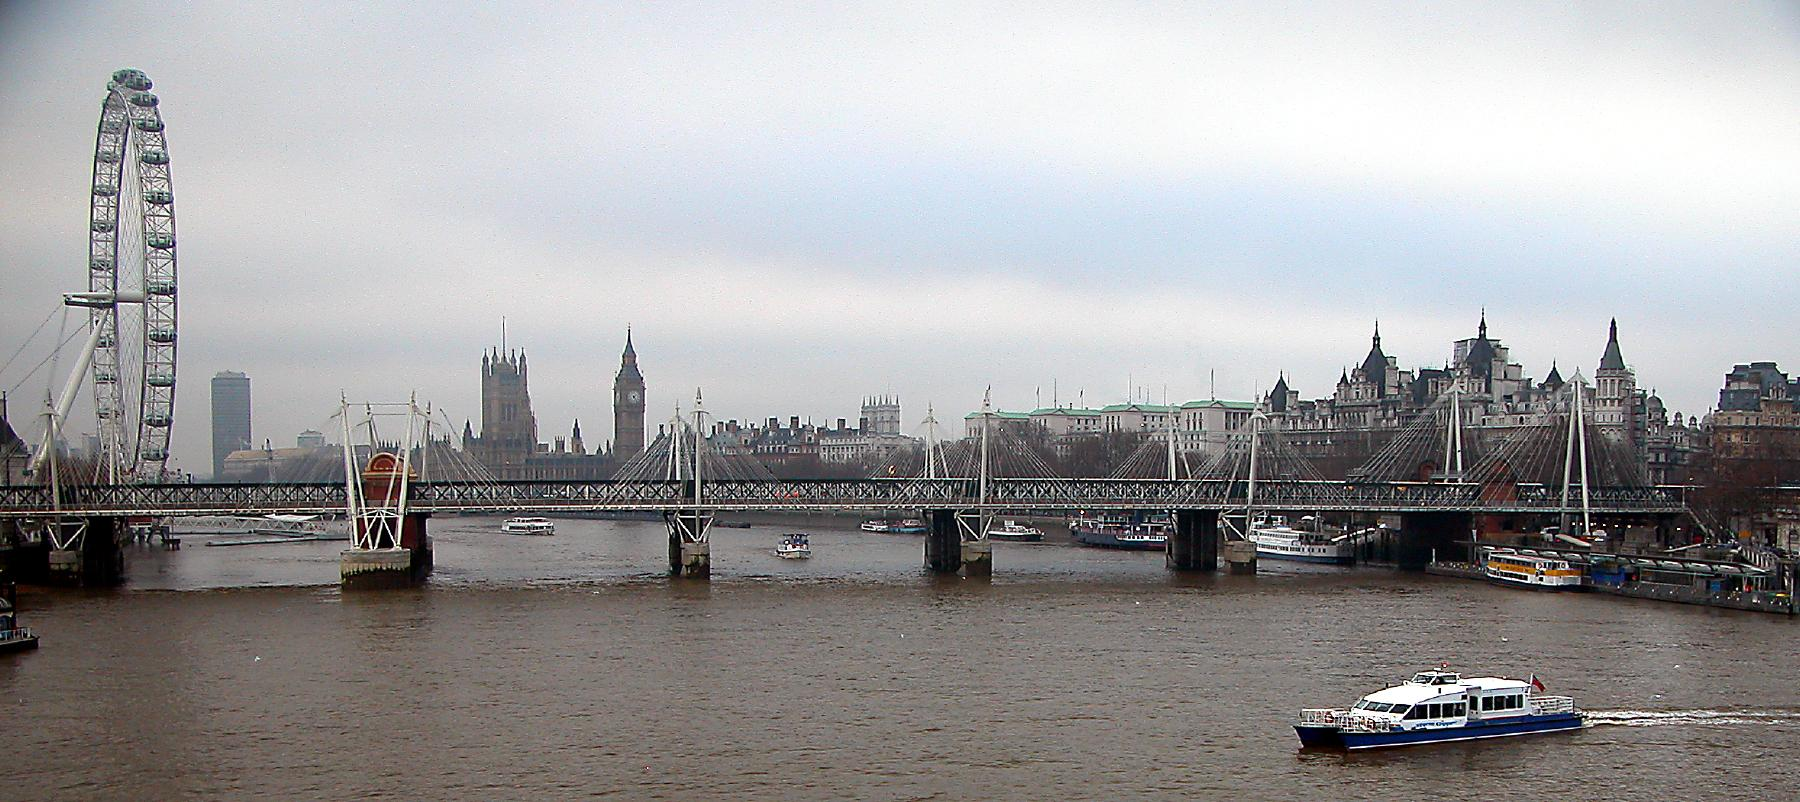 File:Thames River London.jpg